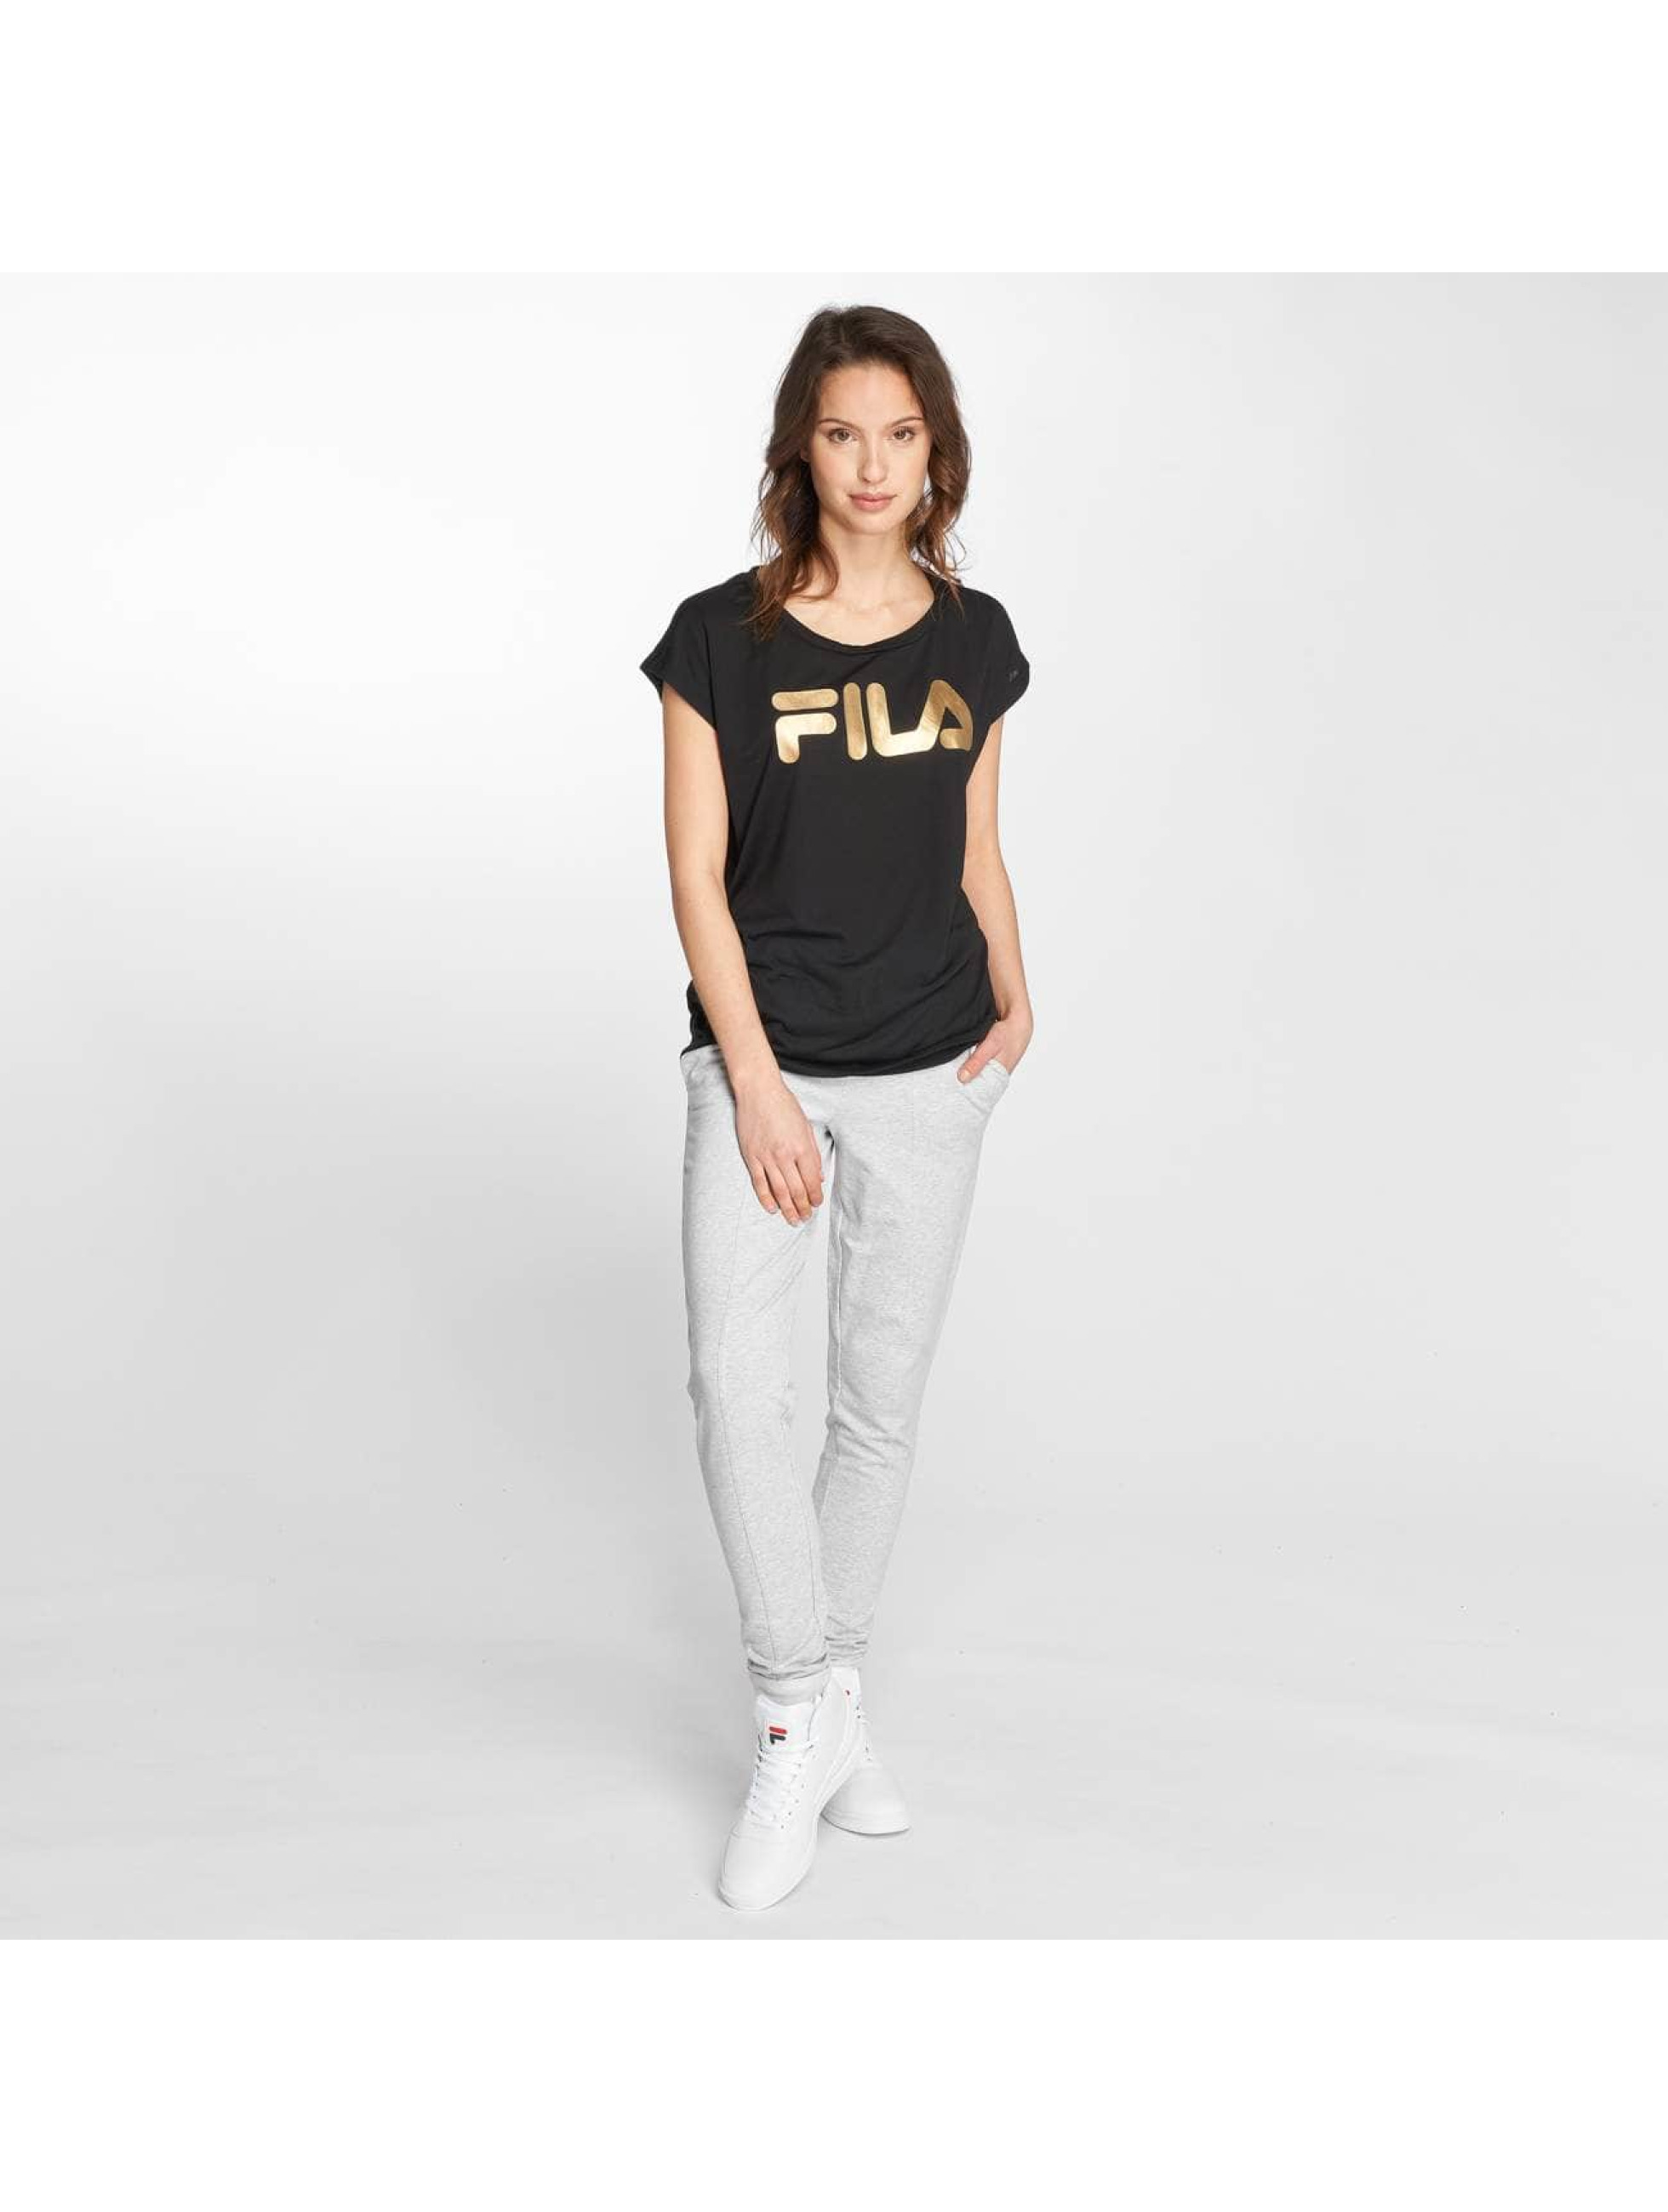 FILA T-shirts Tall Sora sort